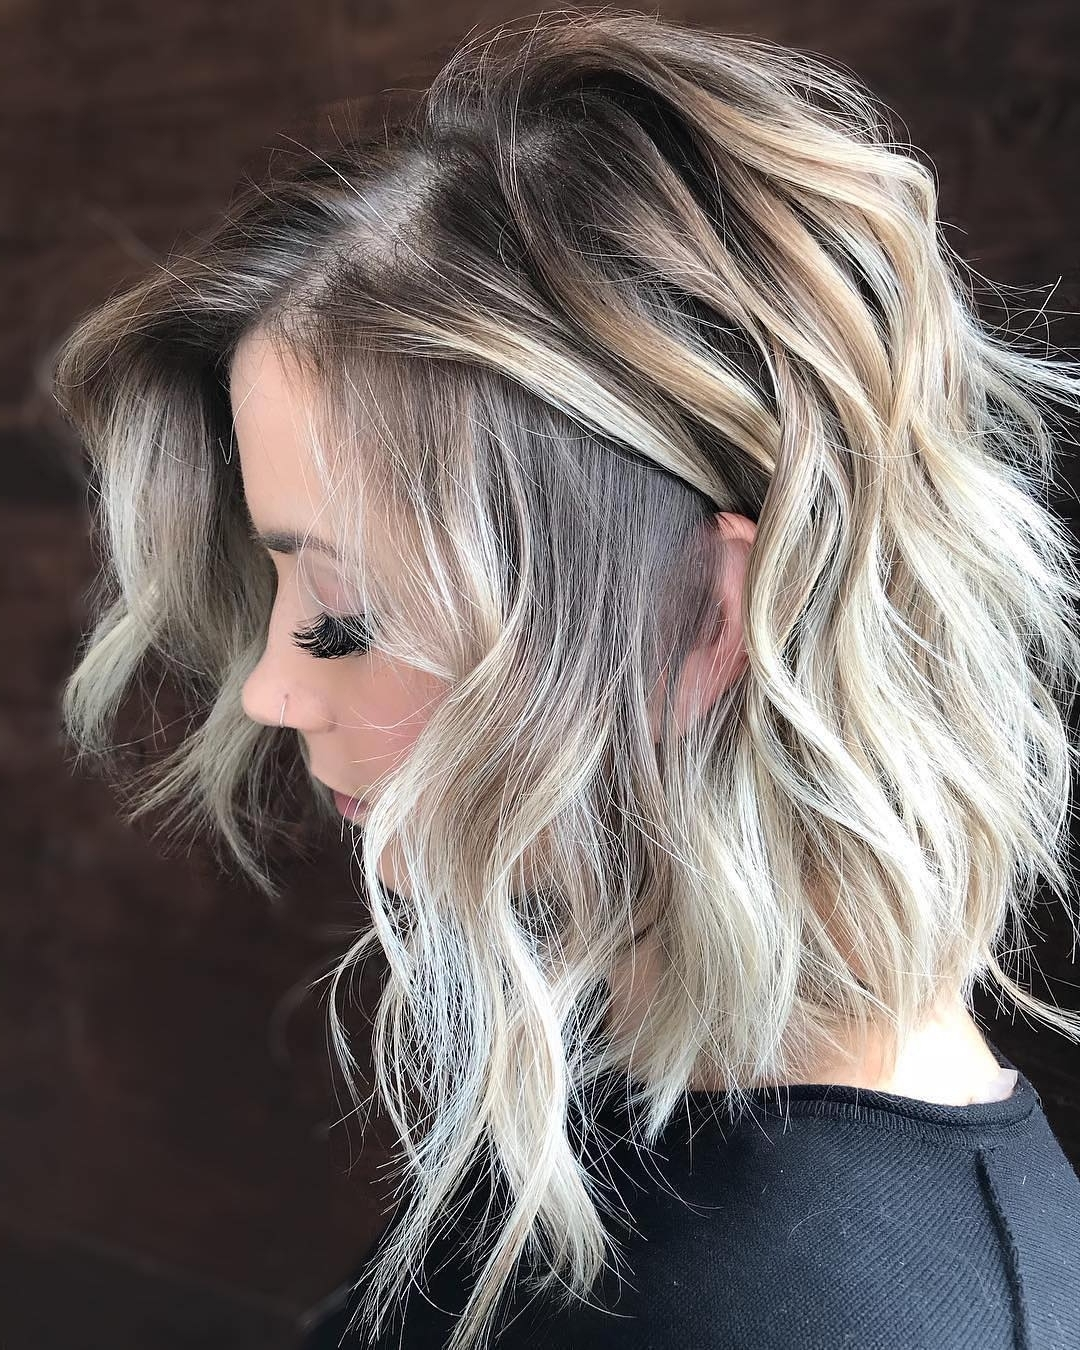 10 Ombre Balayage Hairstyles For Medium Length Hair, Hair Color 2018 With Popular Soft Layers And Side Tuck Blonde Hairstyles (View 13 of 20)